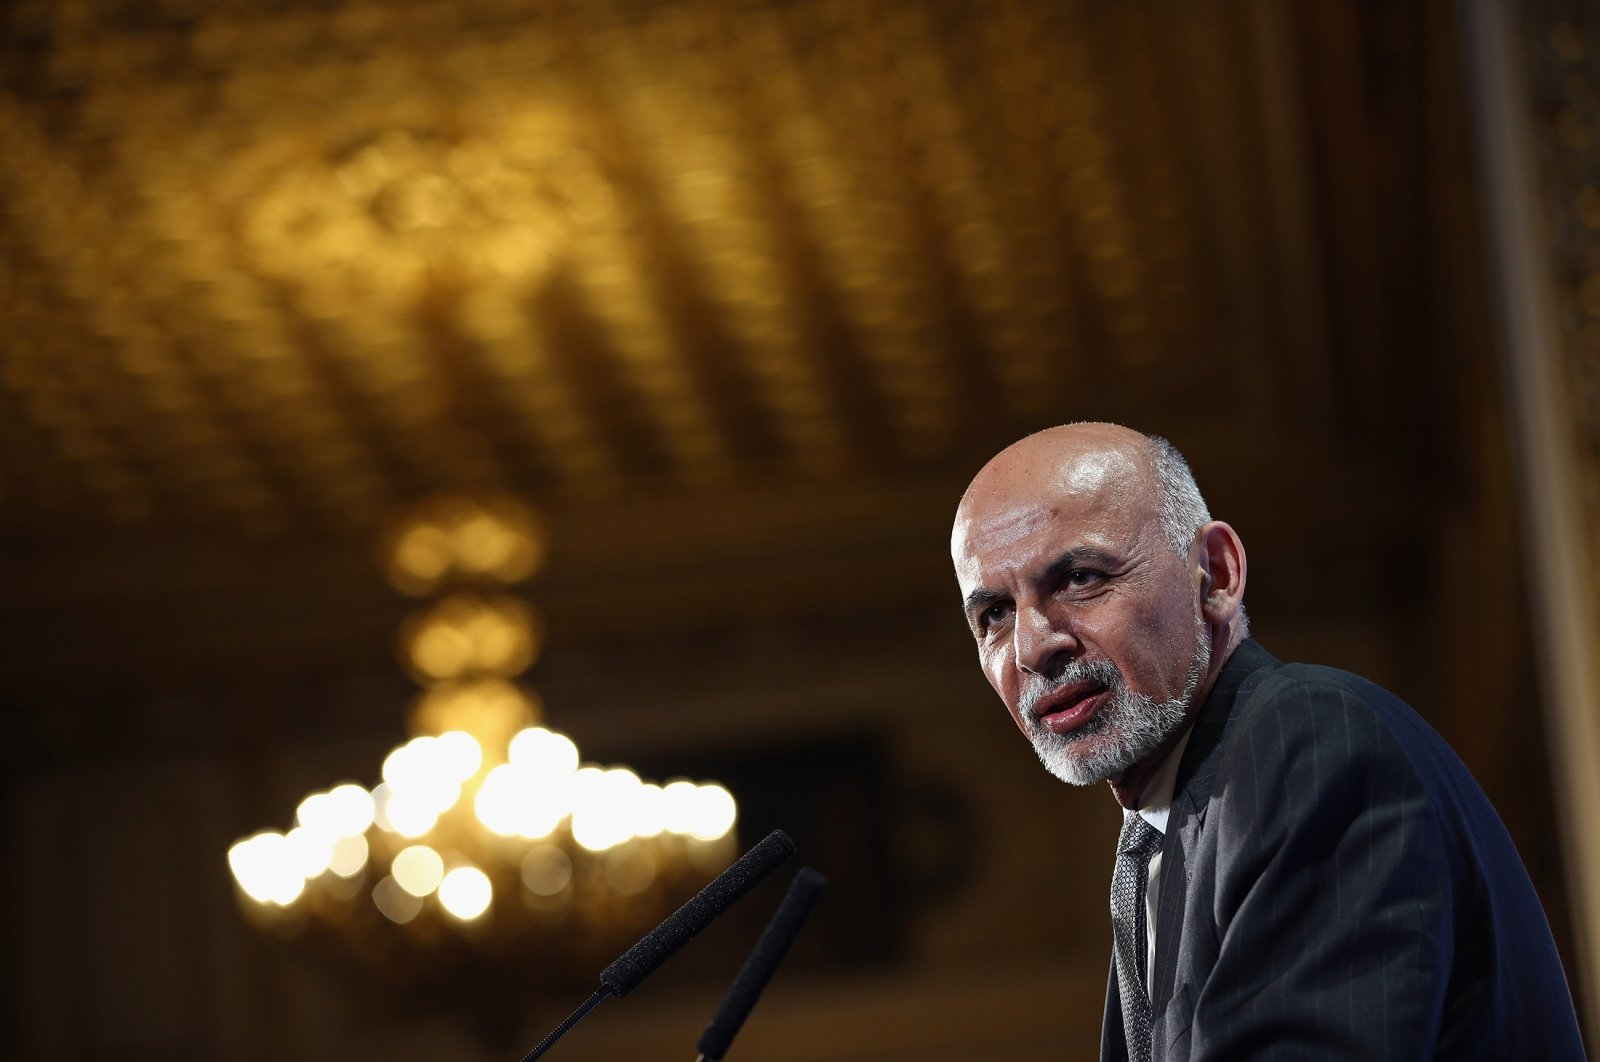 Afghanistan's President Ashraf Ghani speaks to delegates and ministers during the London Conference on Afghanistan, London, U.K., Dec. 4, 2014. (Getty Images)